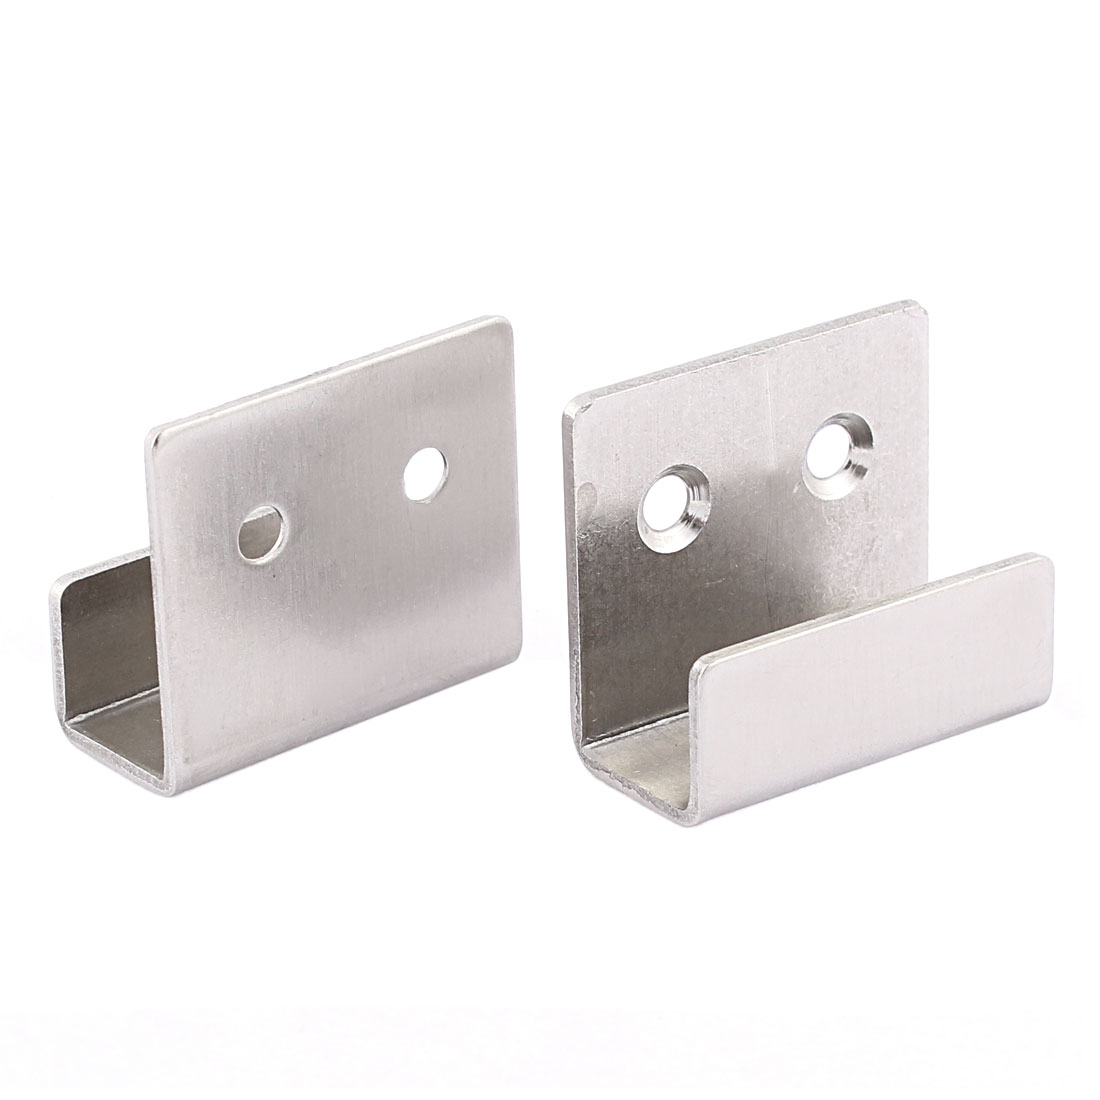 Stainless Steel Wall Hangers 2pcs for Ceramic Tile Display